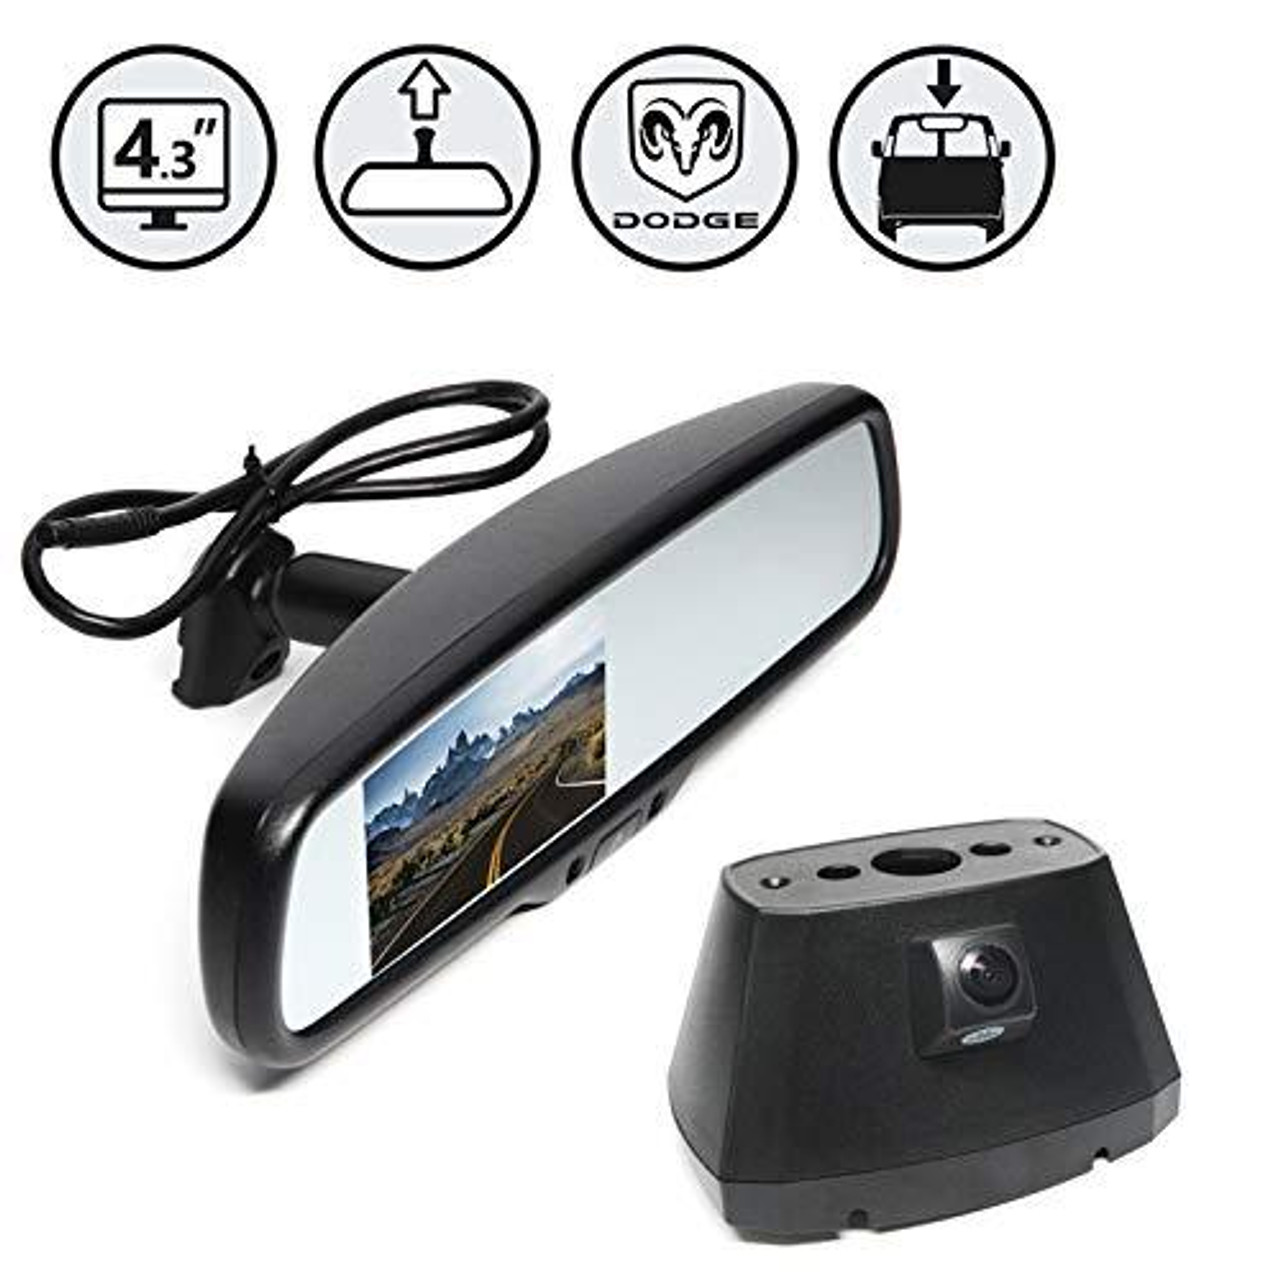 Rear View Safety RVS-918718 Rear View Camera System for Dodge Promaster Vans